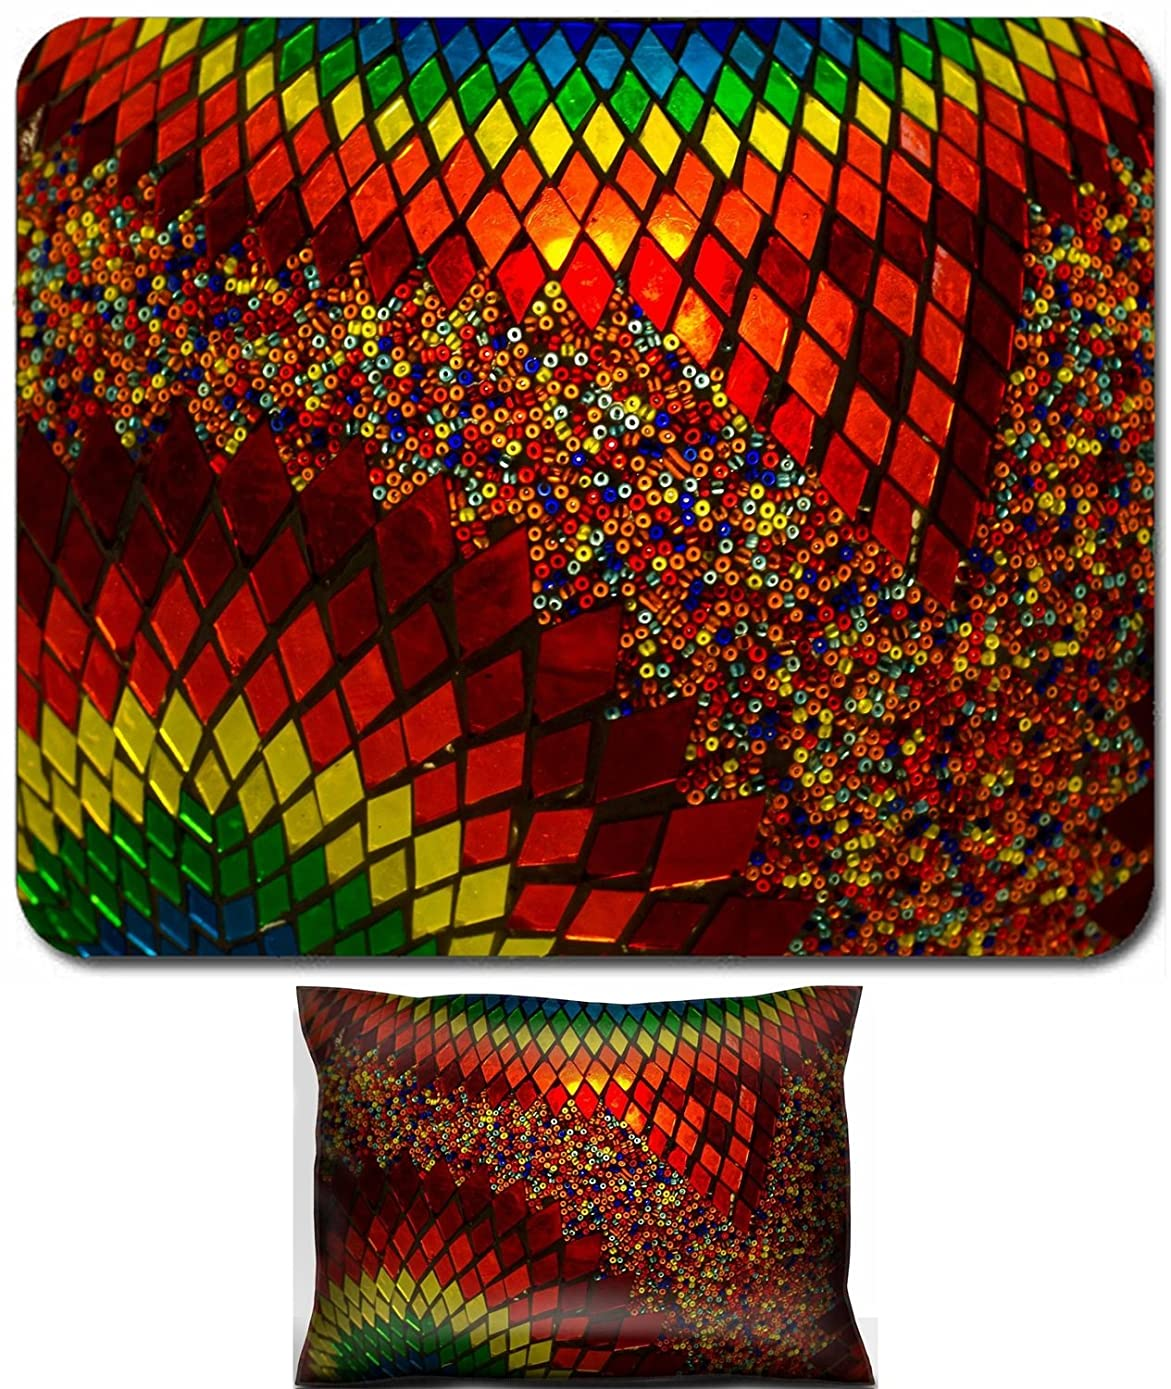 Luxlady Mouse Wrist Rest and Small Mousepad Set, 2pc Wrist Support design IMAGE: 43647770 Background texture of traditional multicolored turkish lamp hanging at the Grand Bazaar in Istanbul Turkey